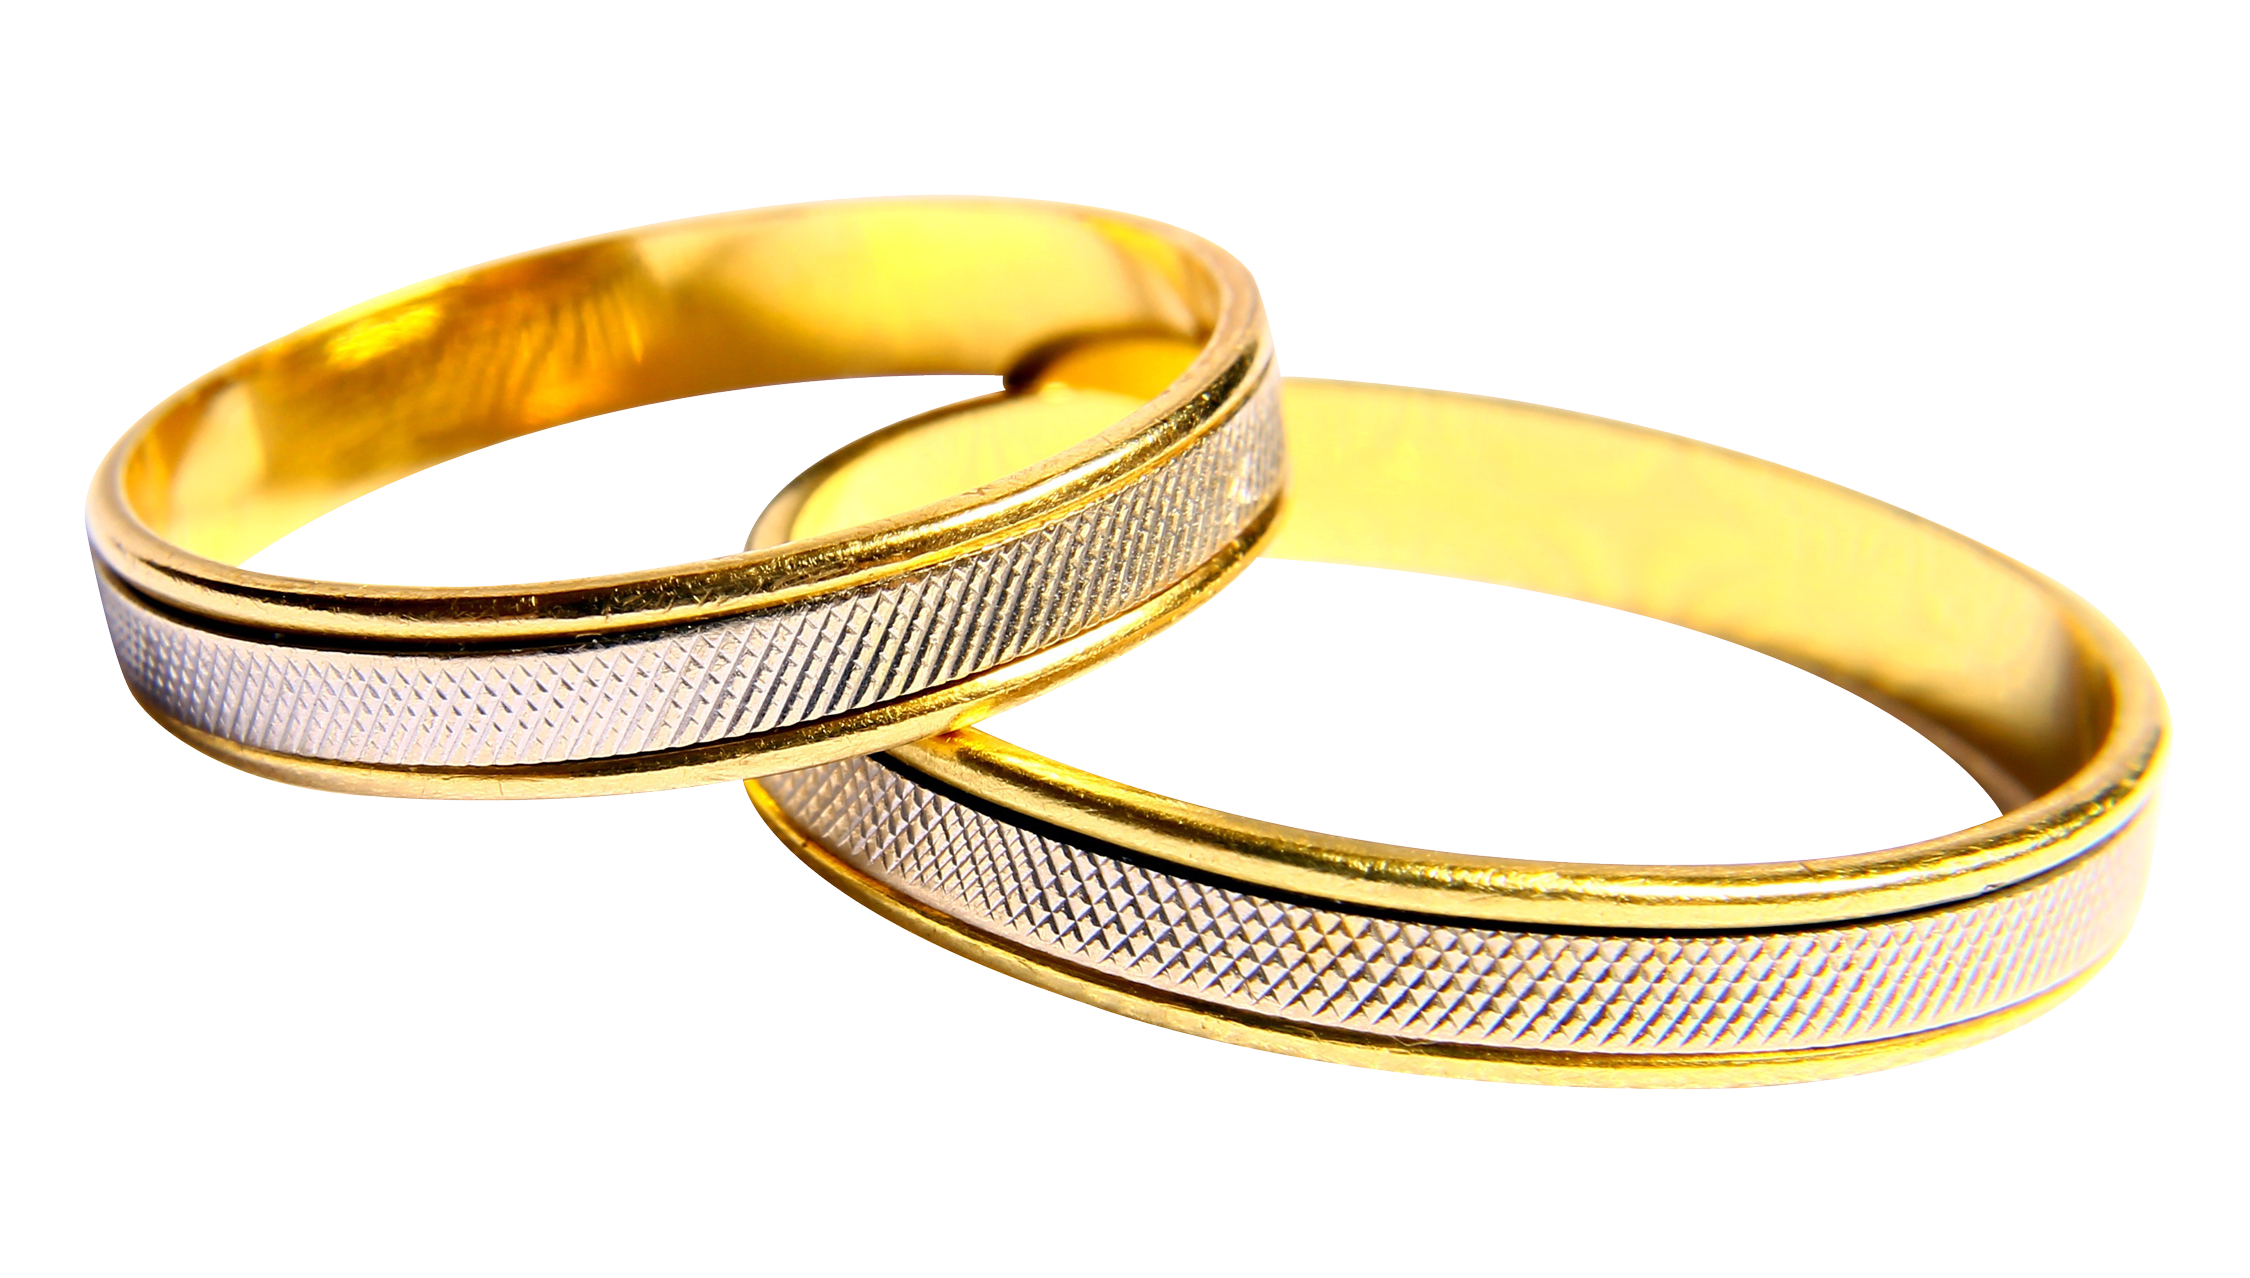 gold embroidered wedding ring png